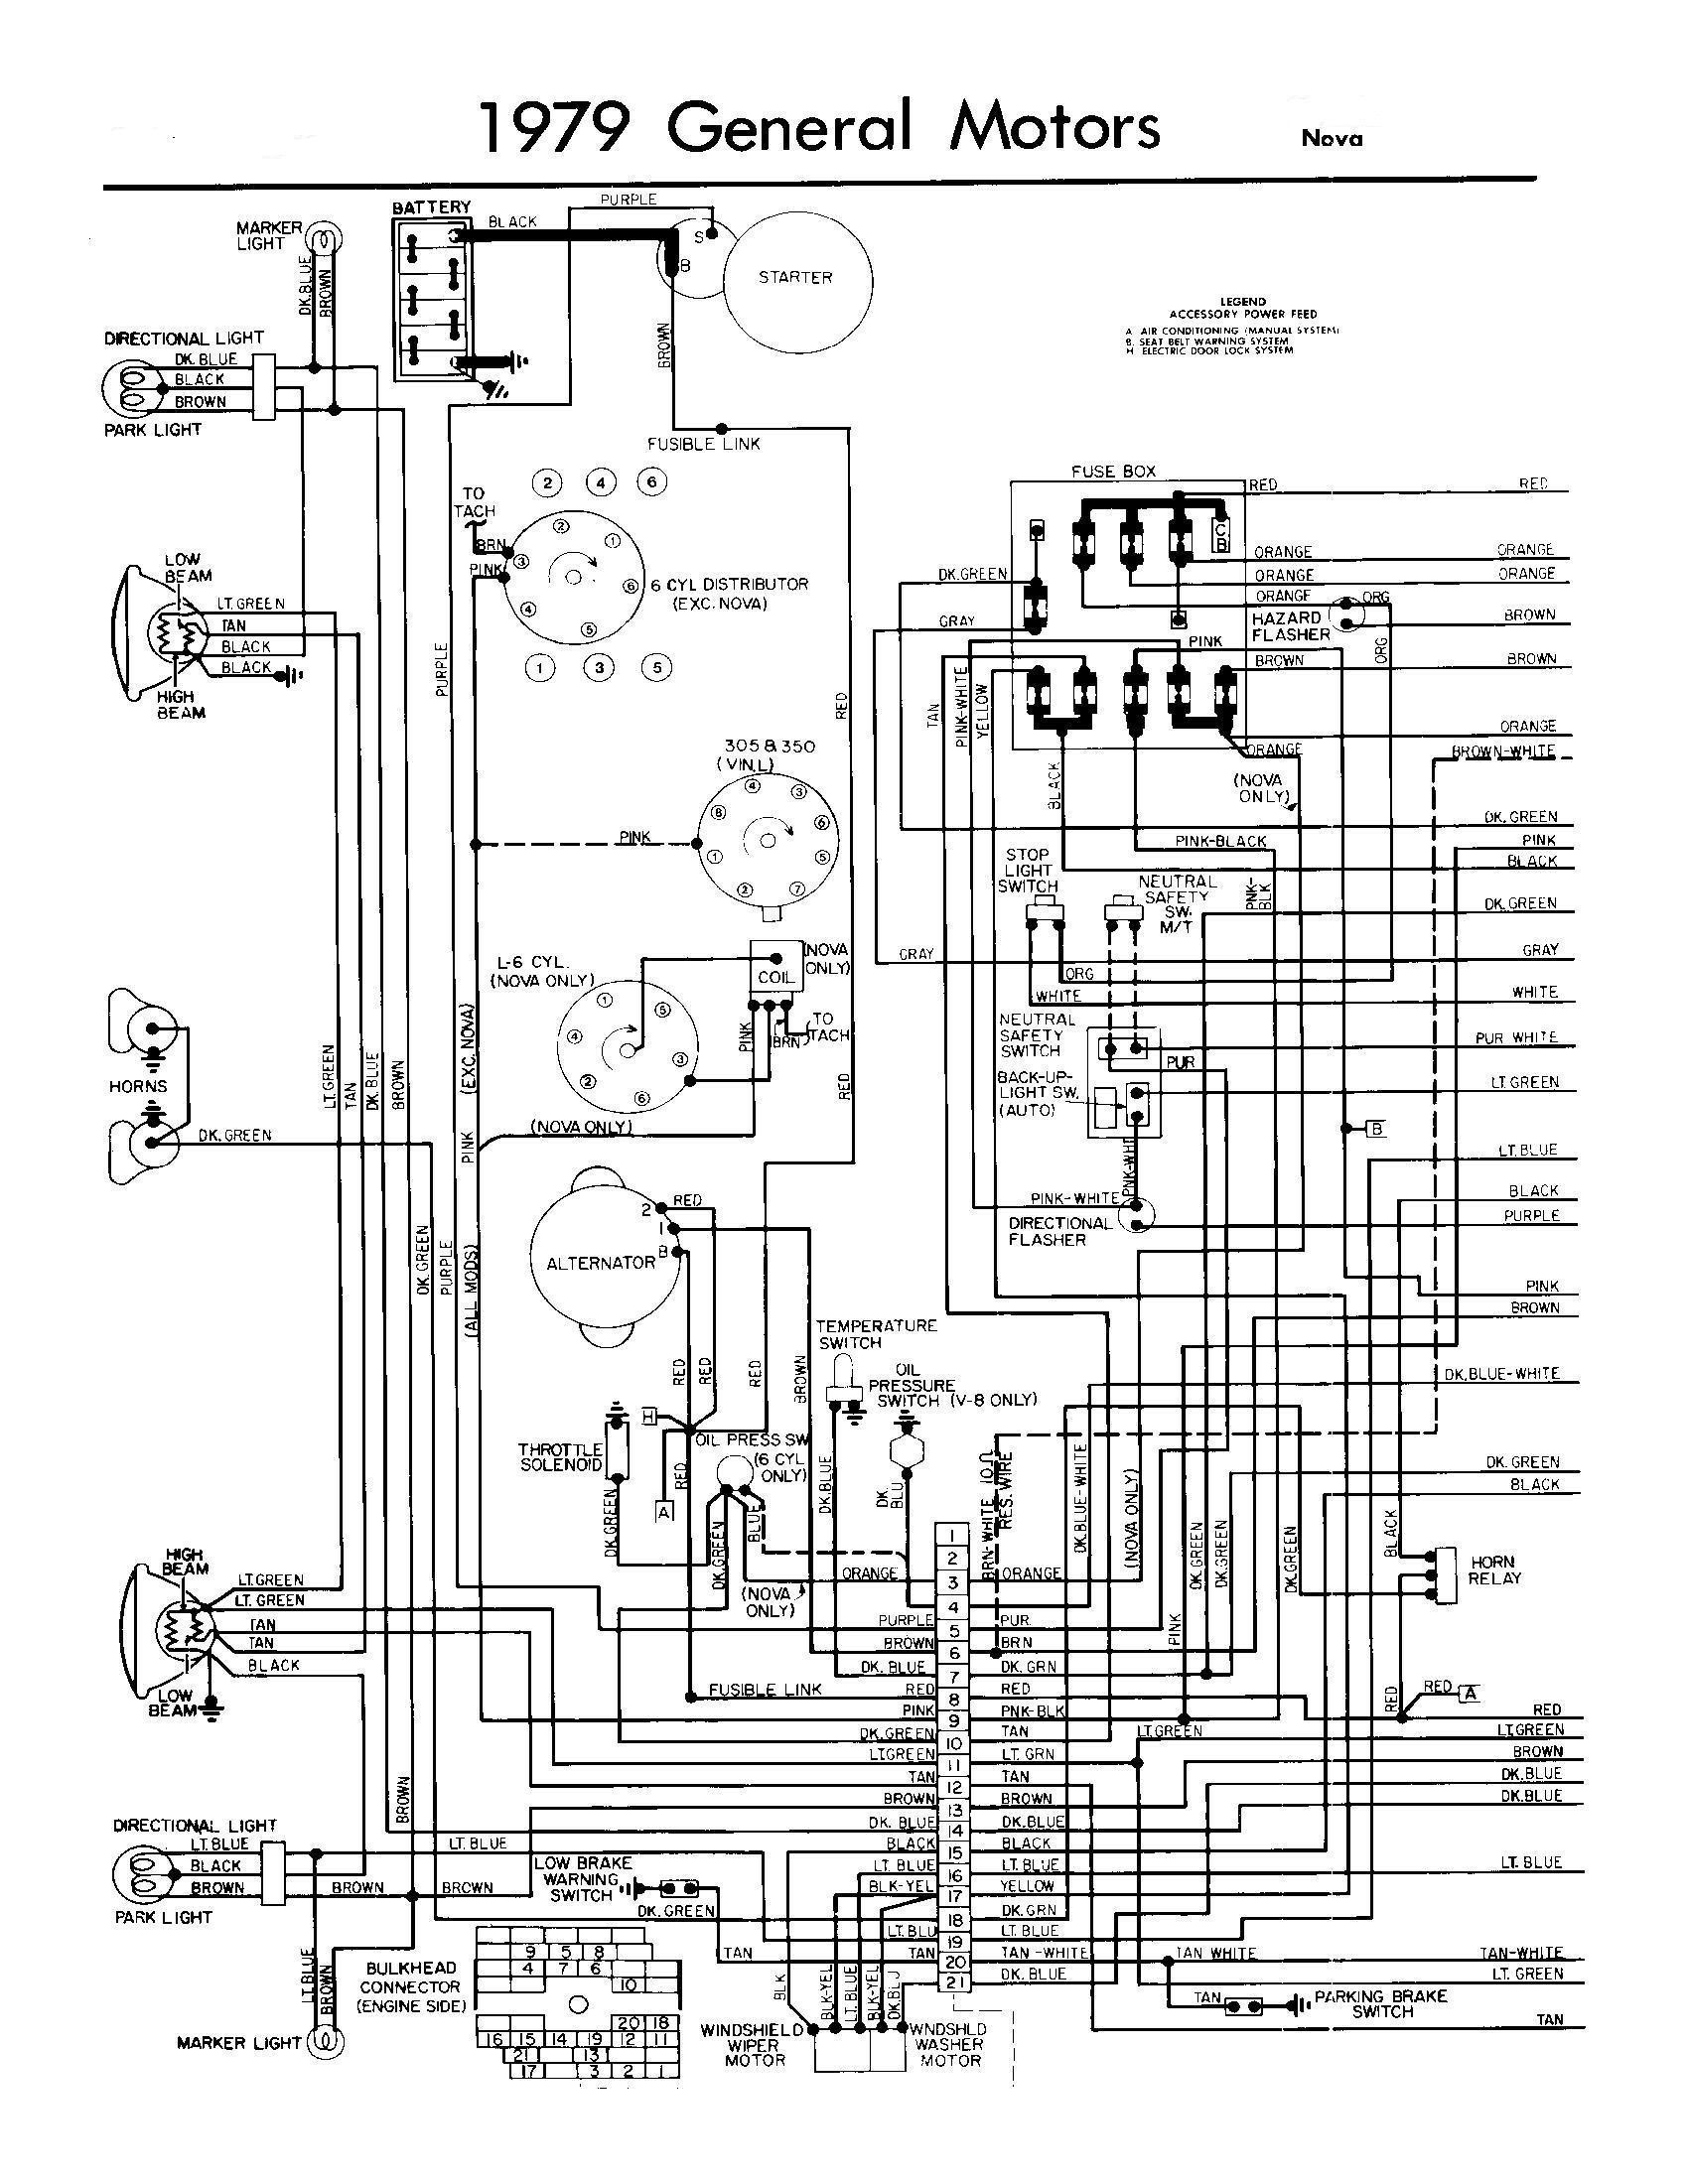 1979 c10 wiring diagram automotive wiring diagram library u2022 rh seigokanengland co uk 1979 c10 headlight wiring diagram